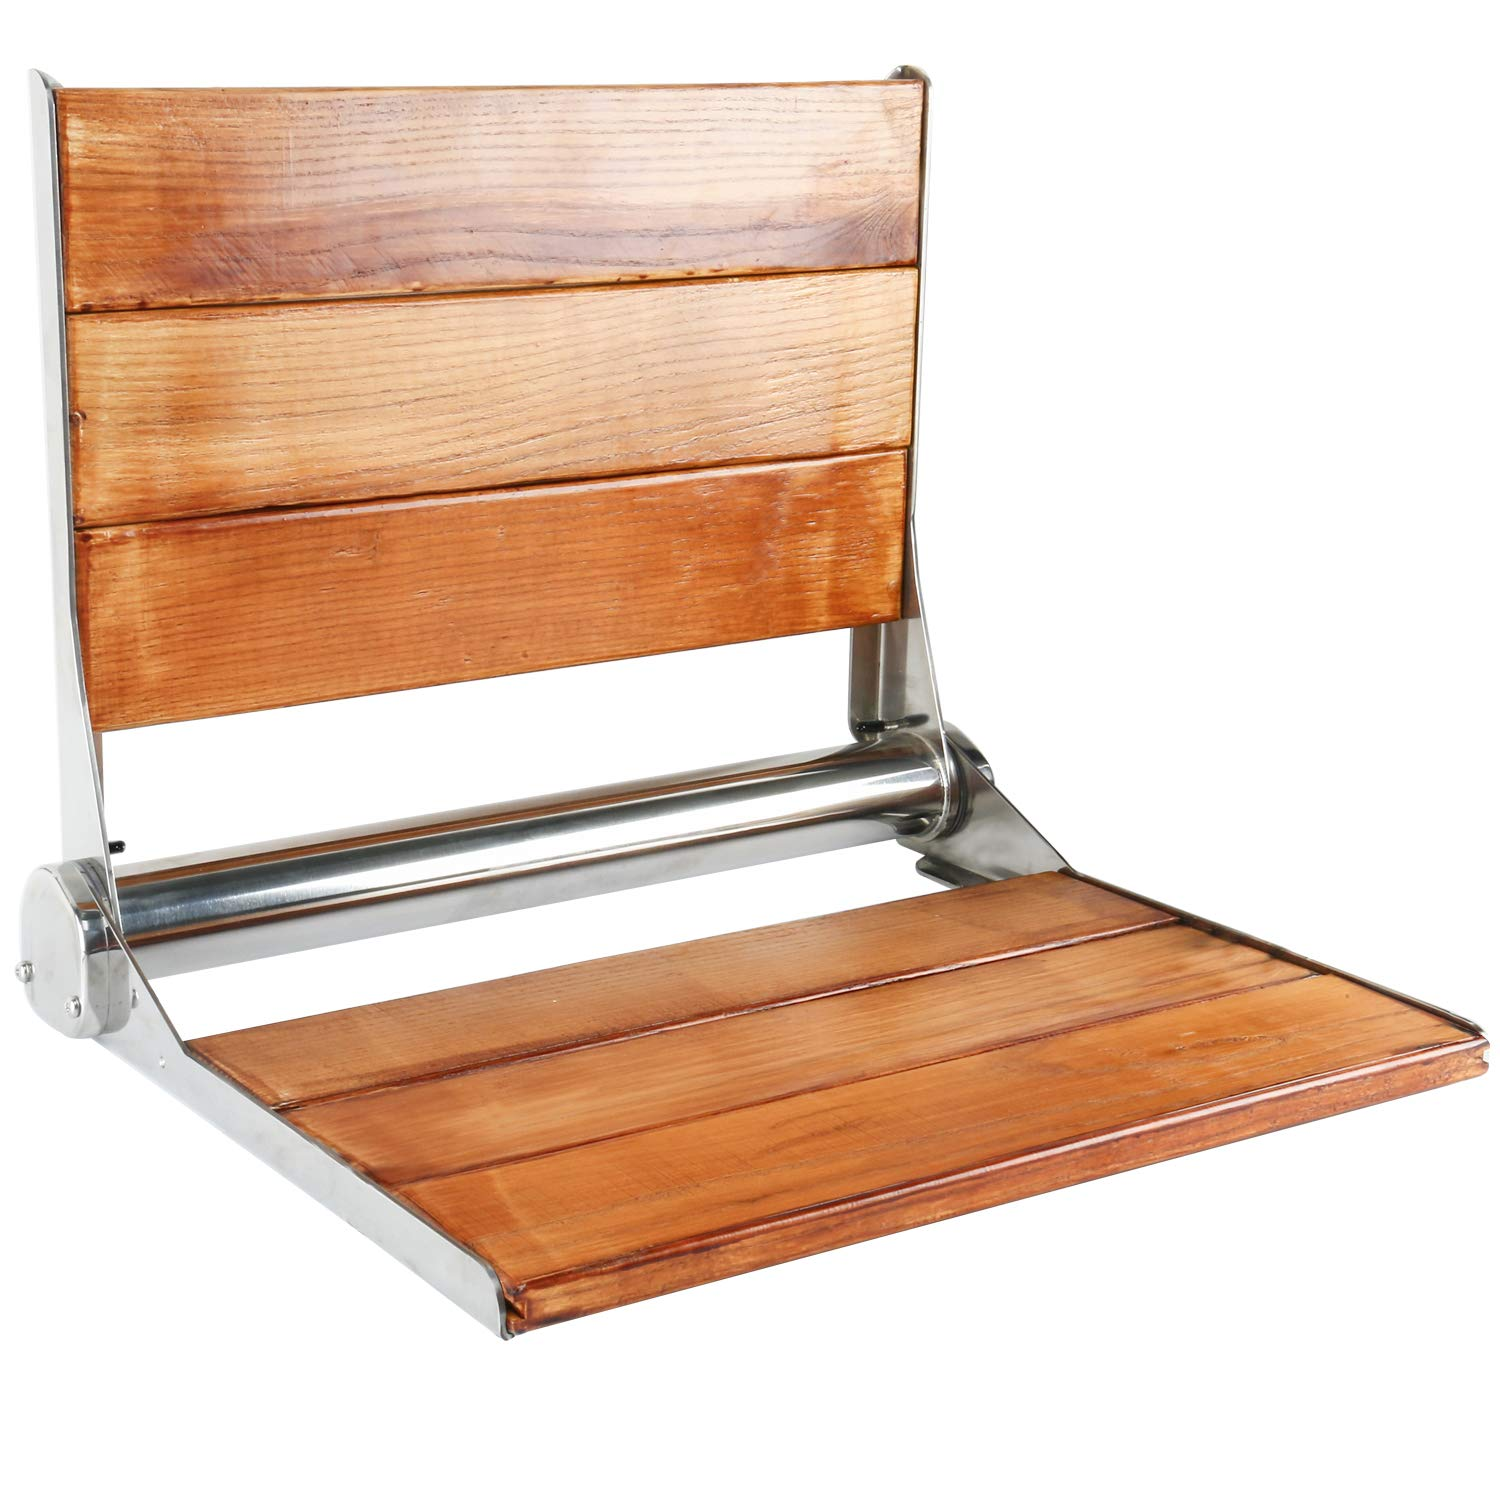 Amarine-made Solid Wood Wall Mounted Folding Shower Seat or Bench - 4018S (19'' x 15'',Solid Wood with Stainless Steel Frame)